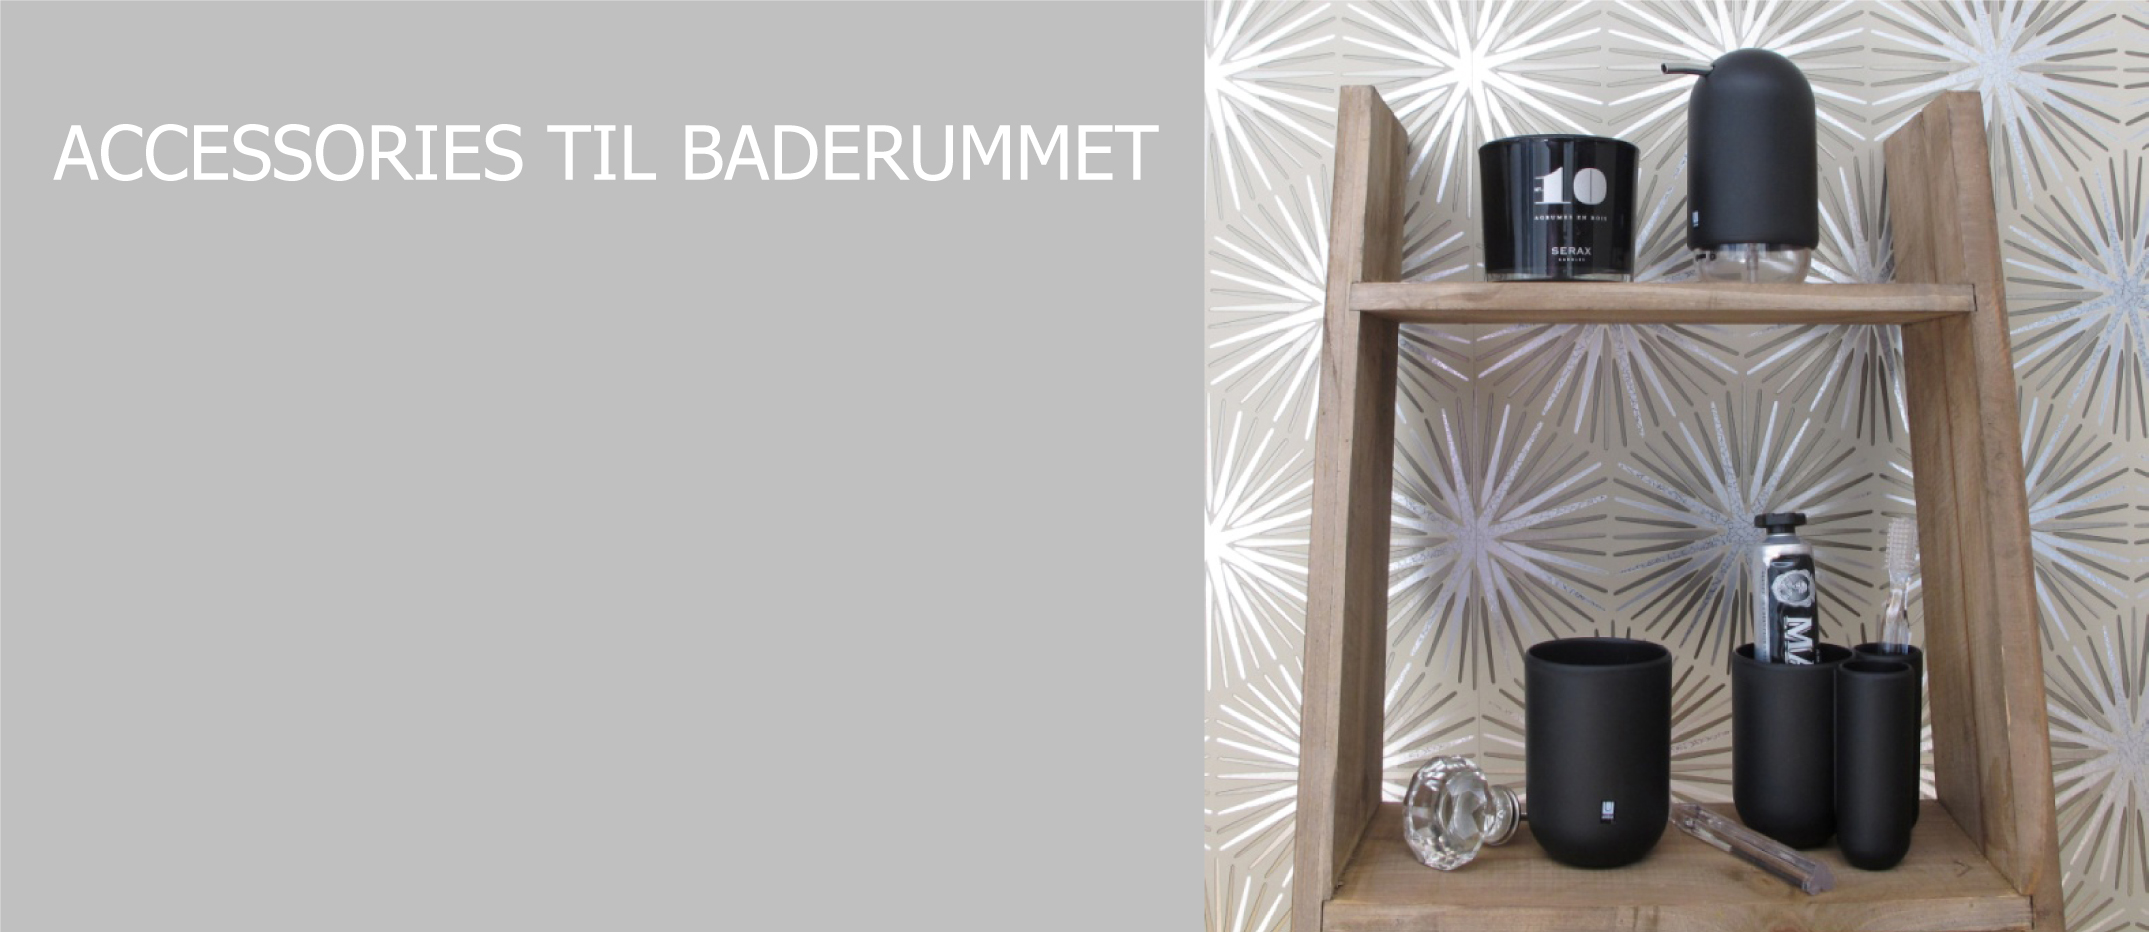 Accessories_til_baderummet